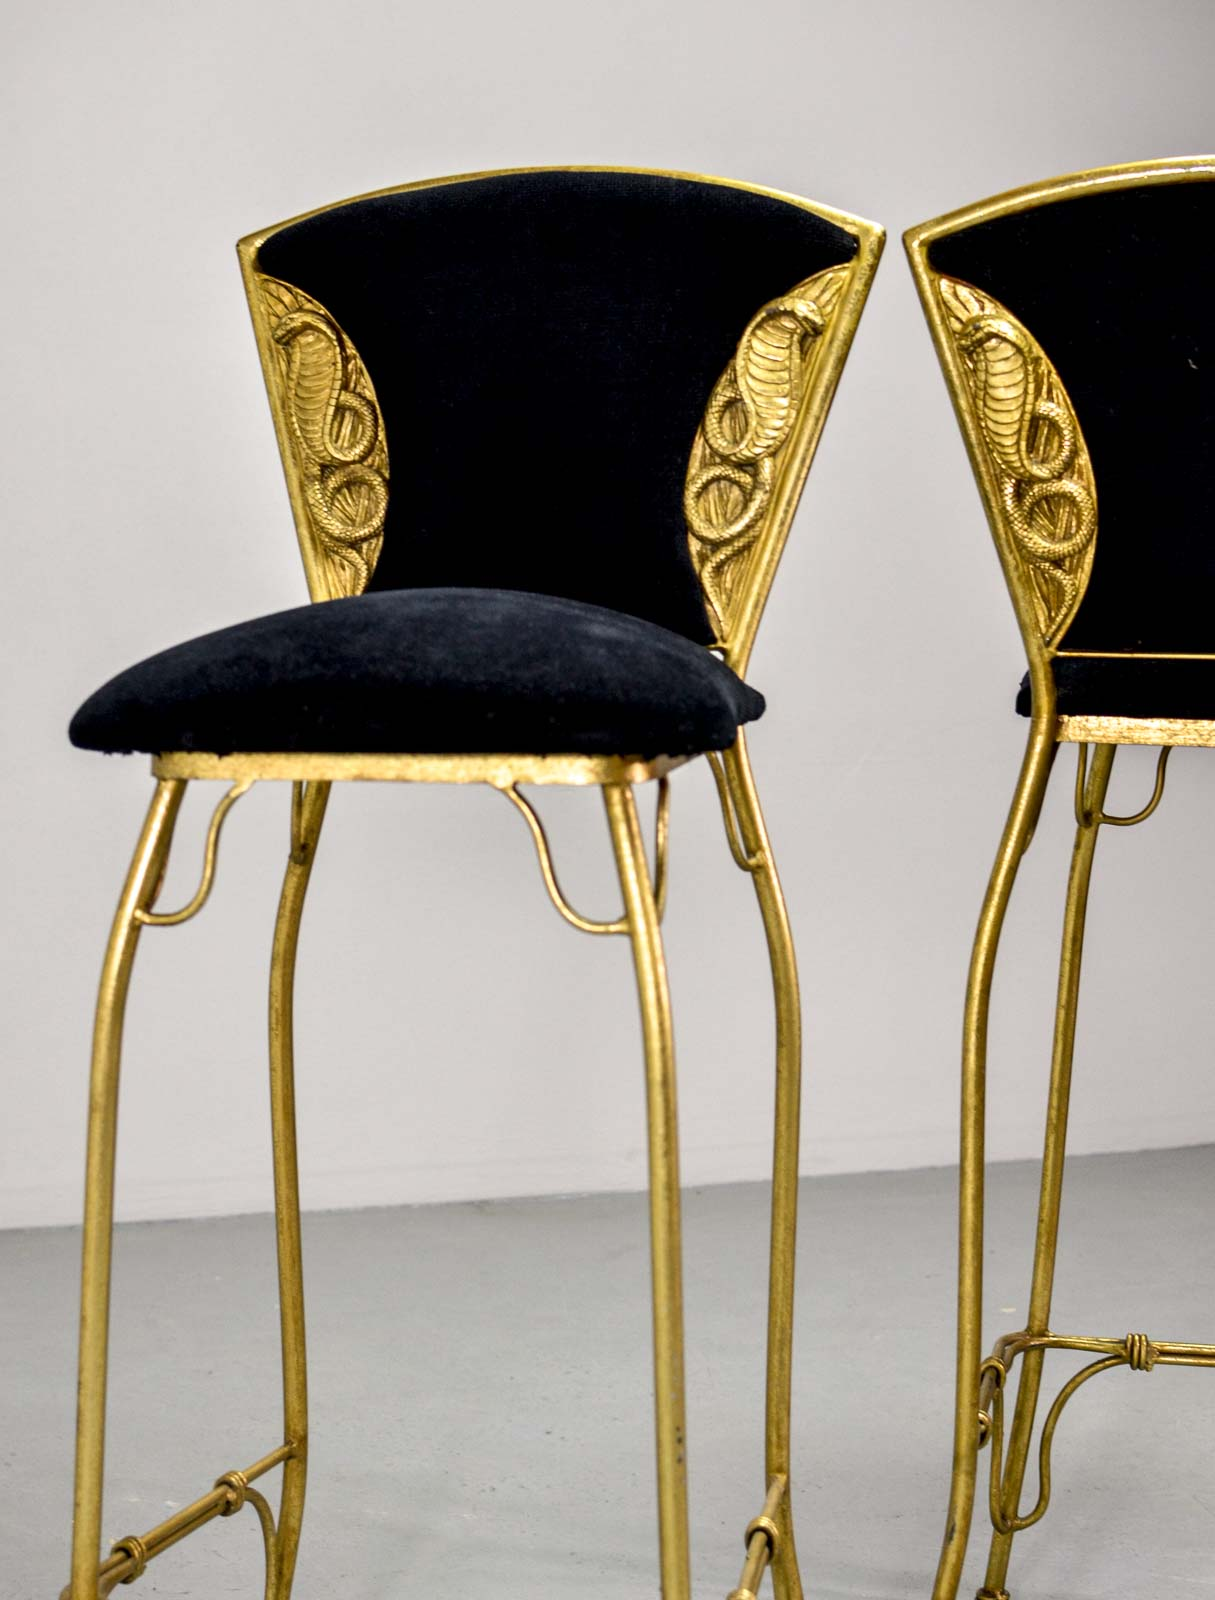 10 Mid Century Modern Design Lessons To Remember: Mid-Century Set Of 10 Gilded Cobra Bar Stools